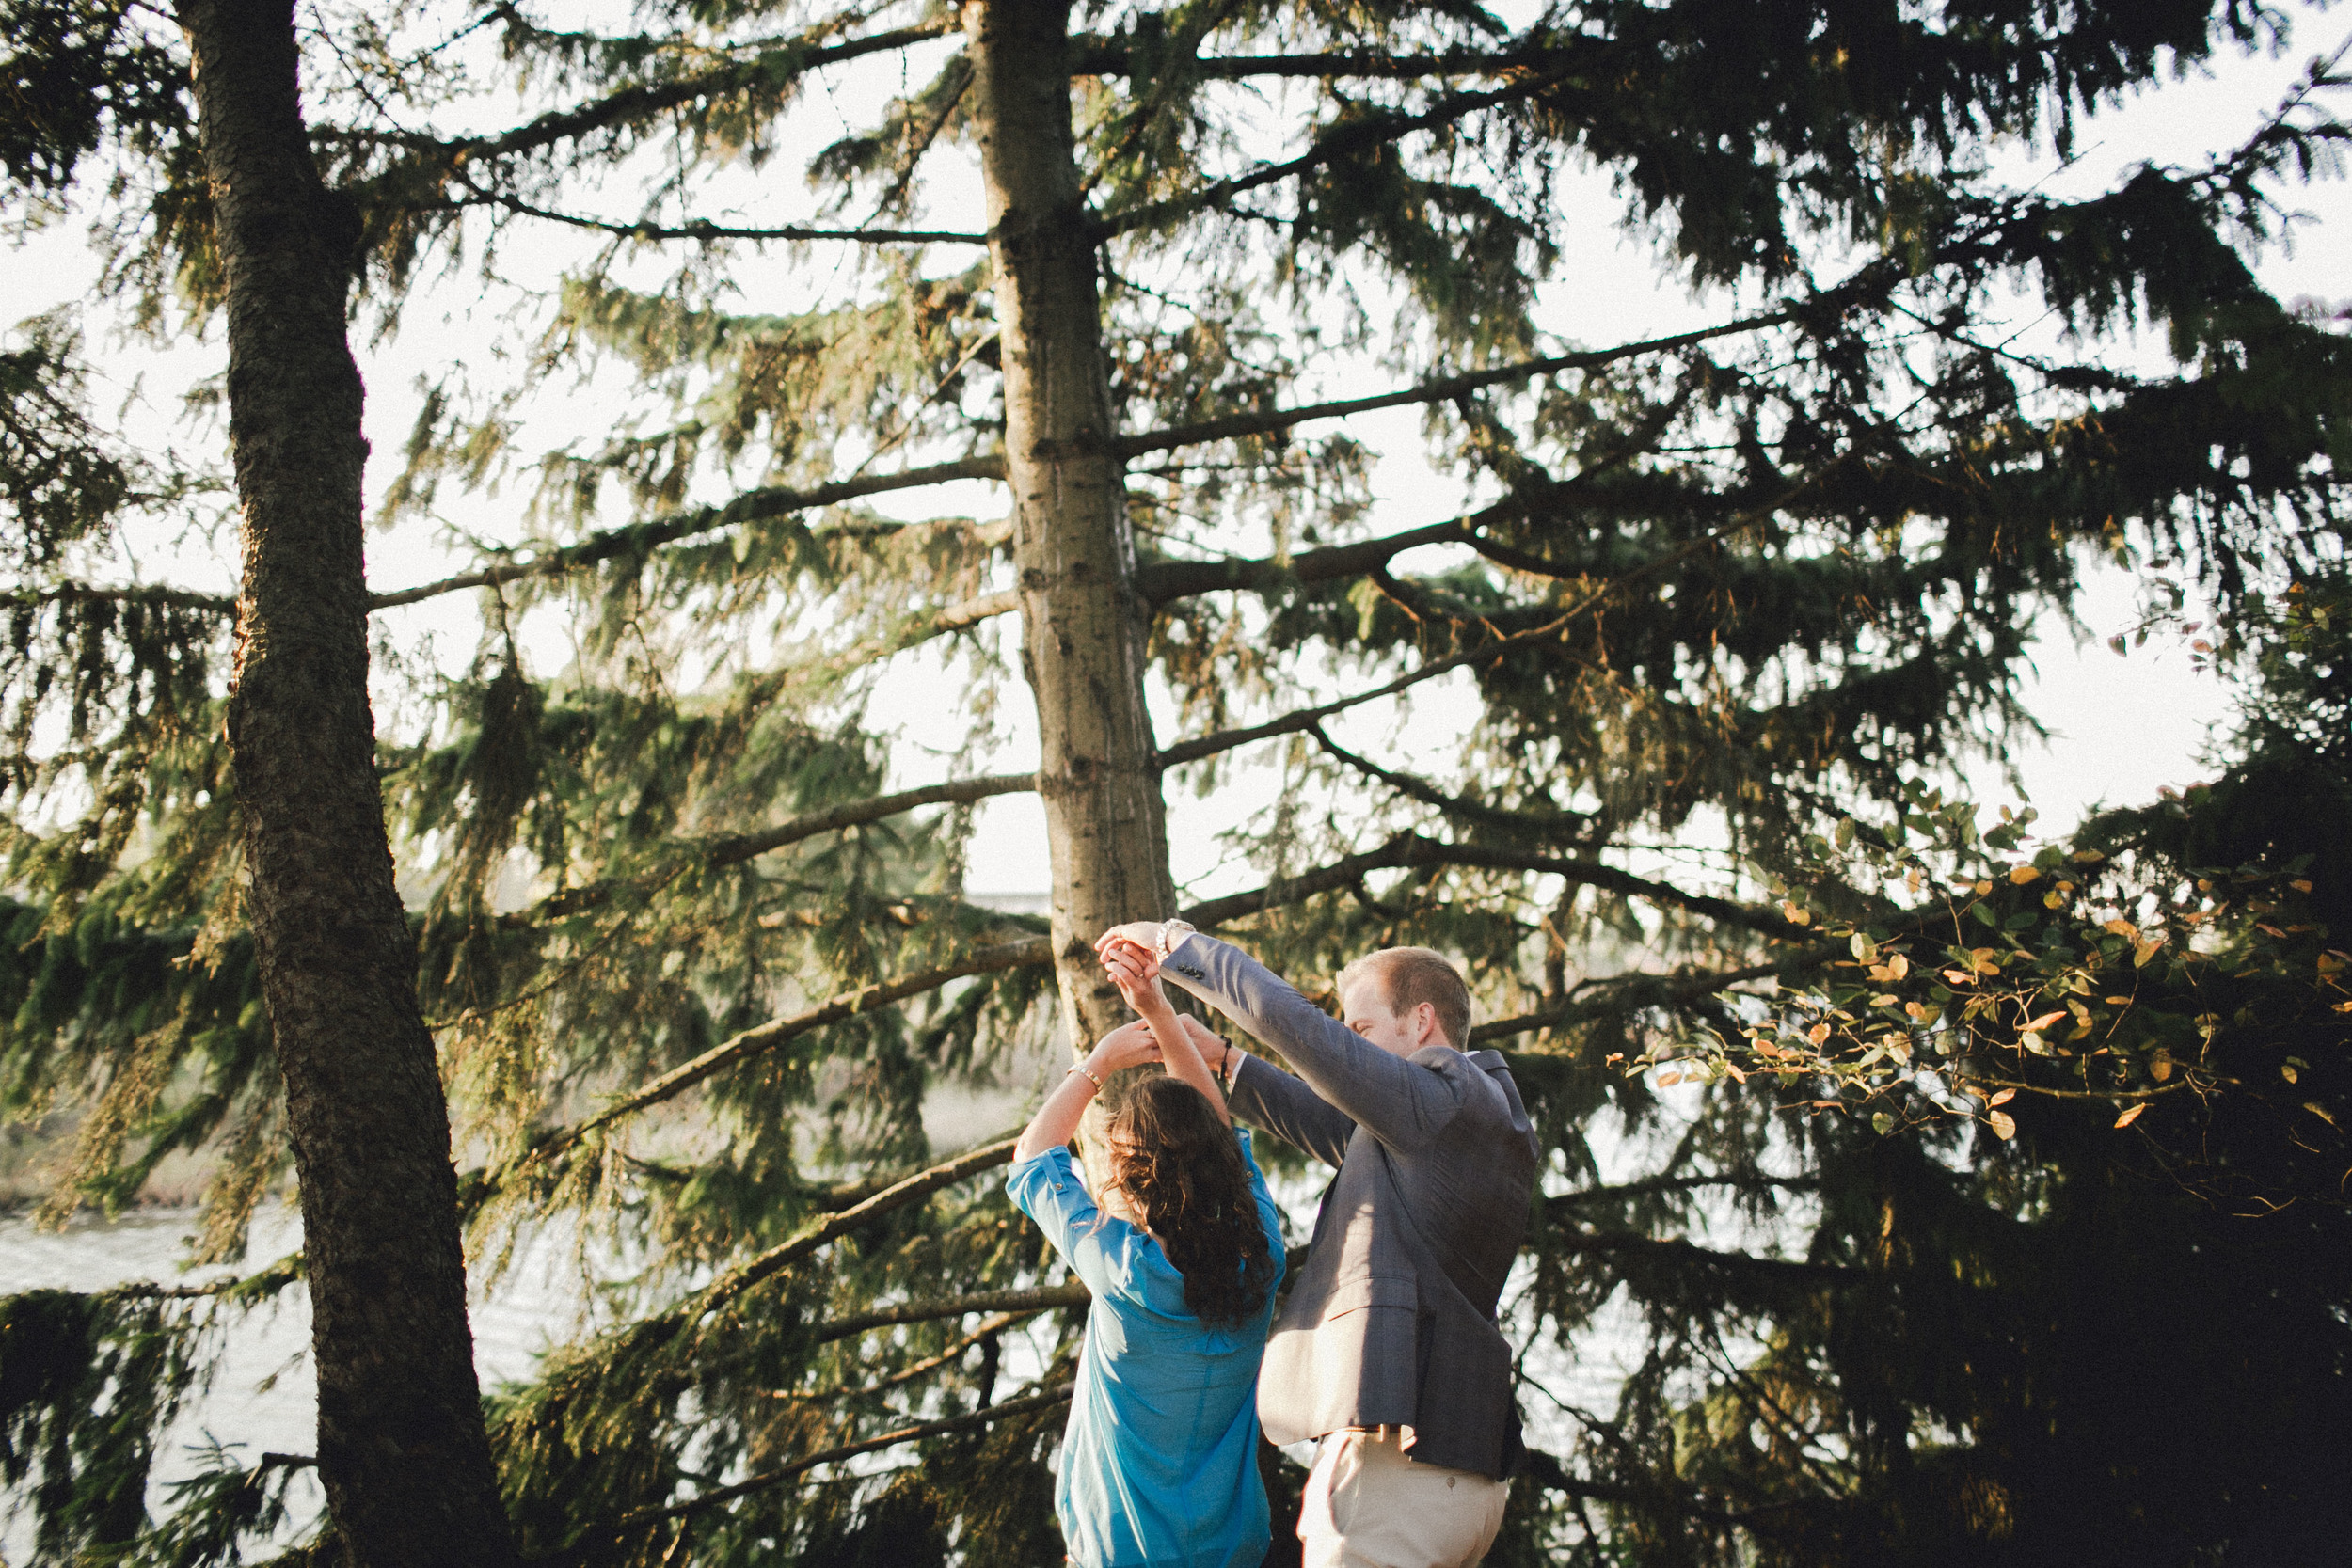 mayden photography_chicago botanical gardens engagement photo-19.jpg